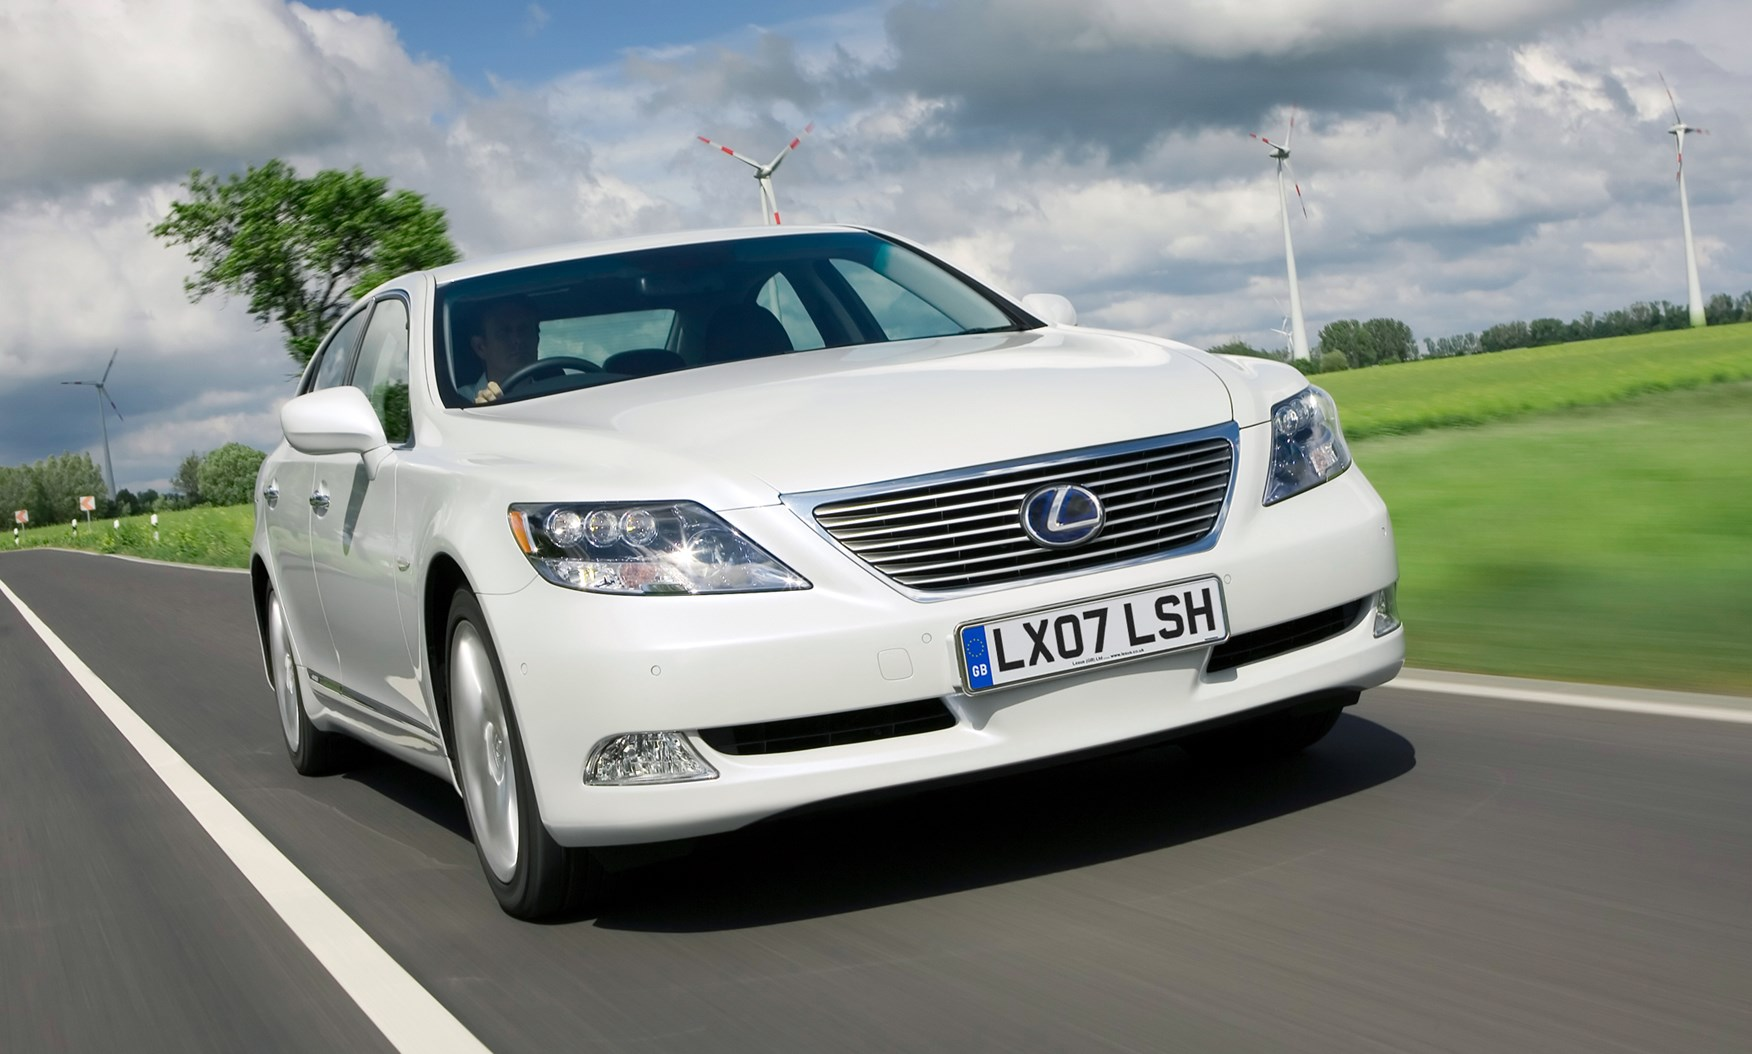 View all images of the lexus ls 07 17